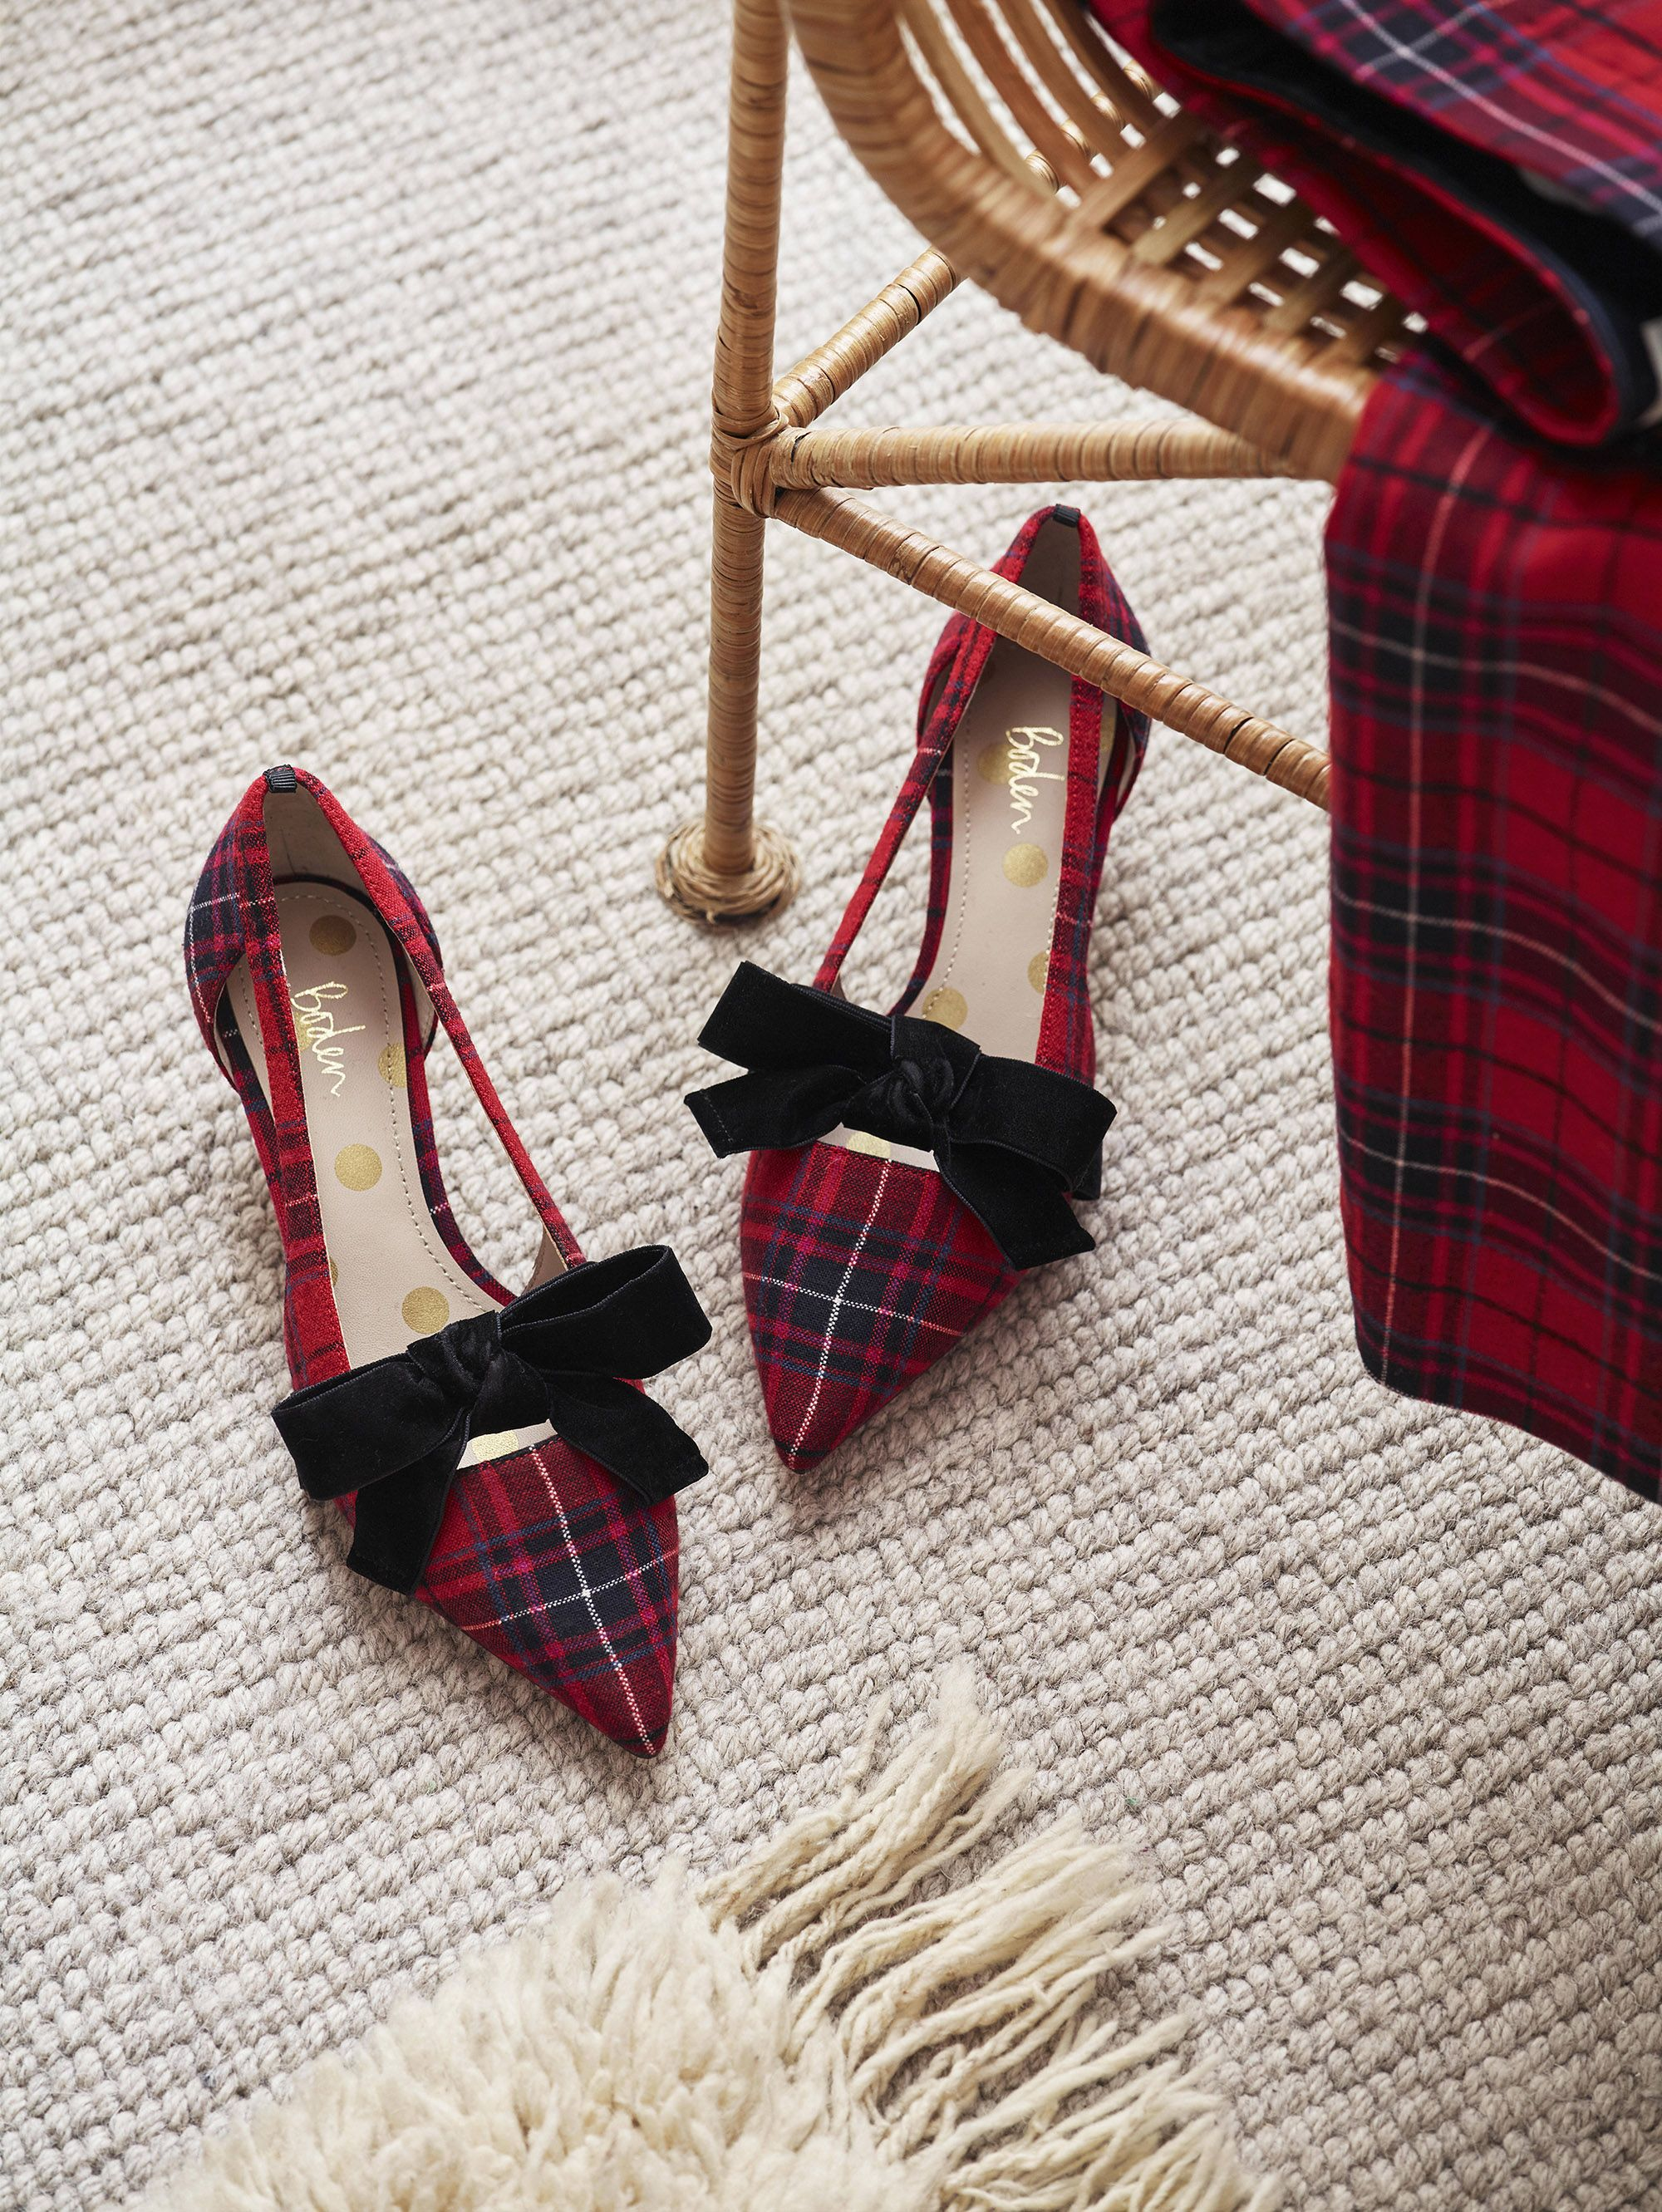 These stylish Boden shoes are perfect for party season